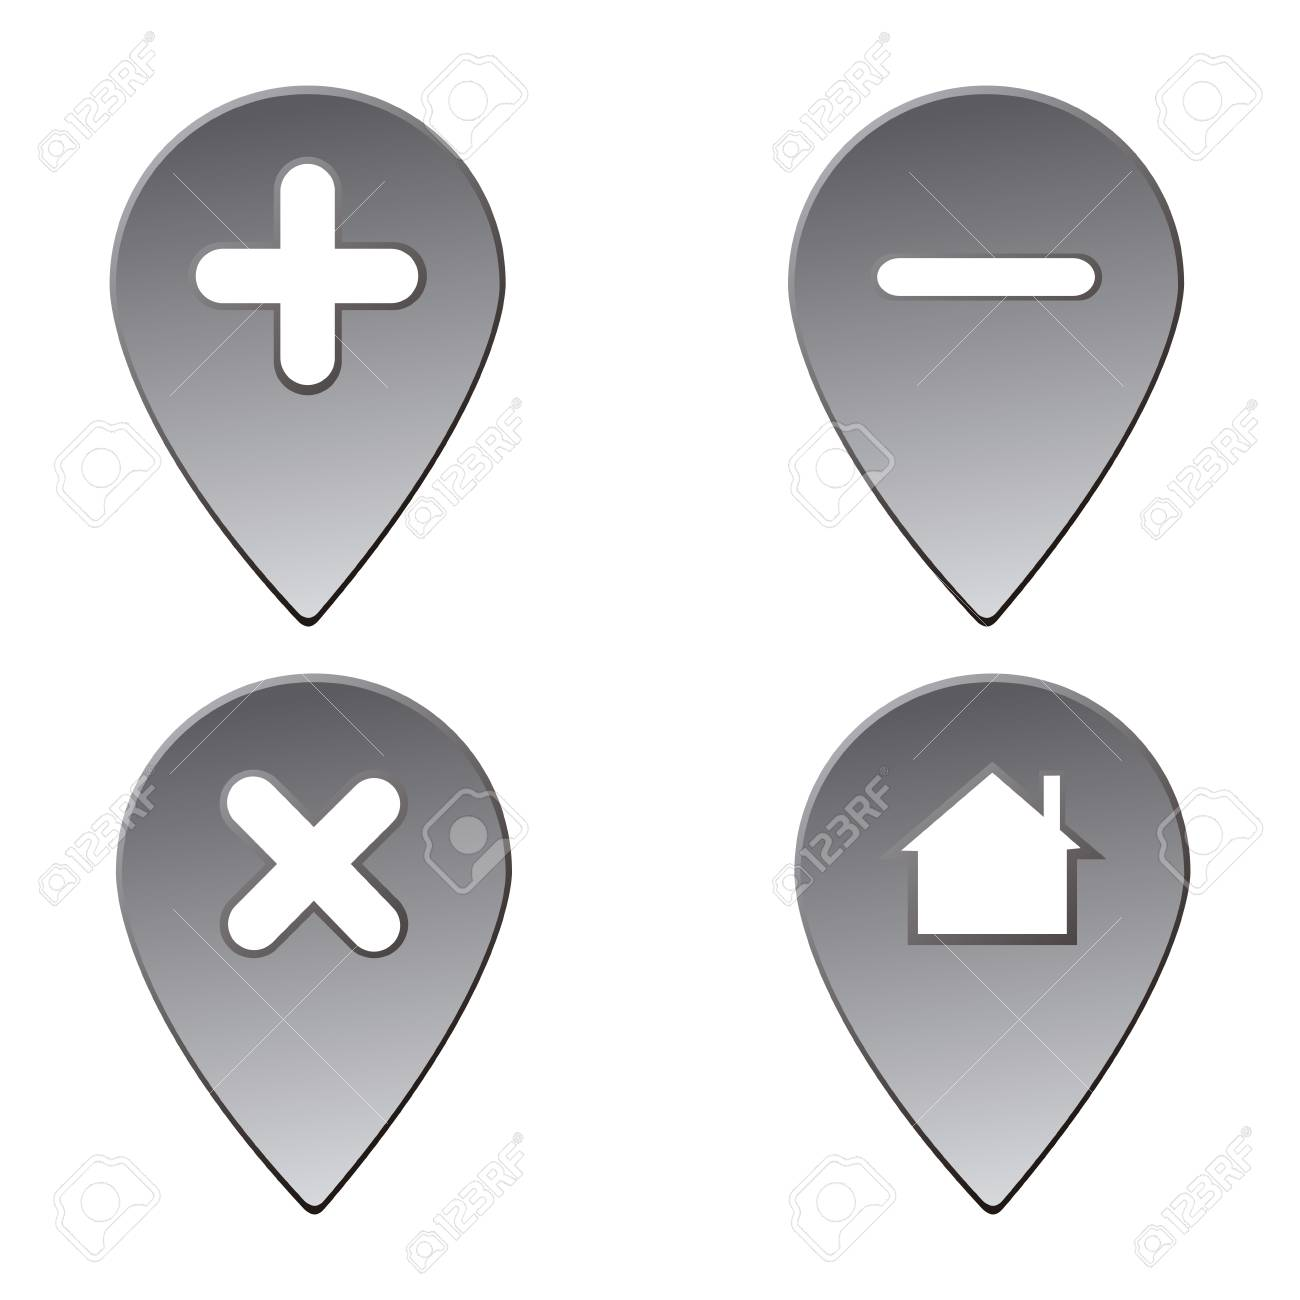 set of map pins on a white background vector illustration royalty